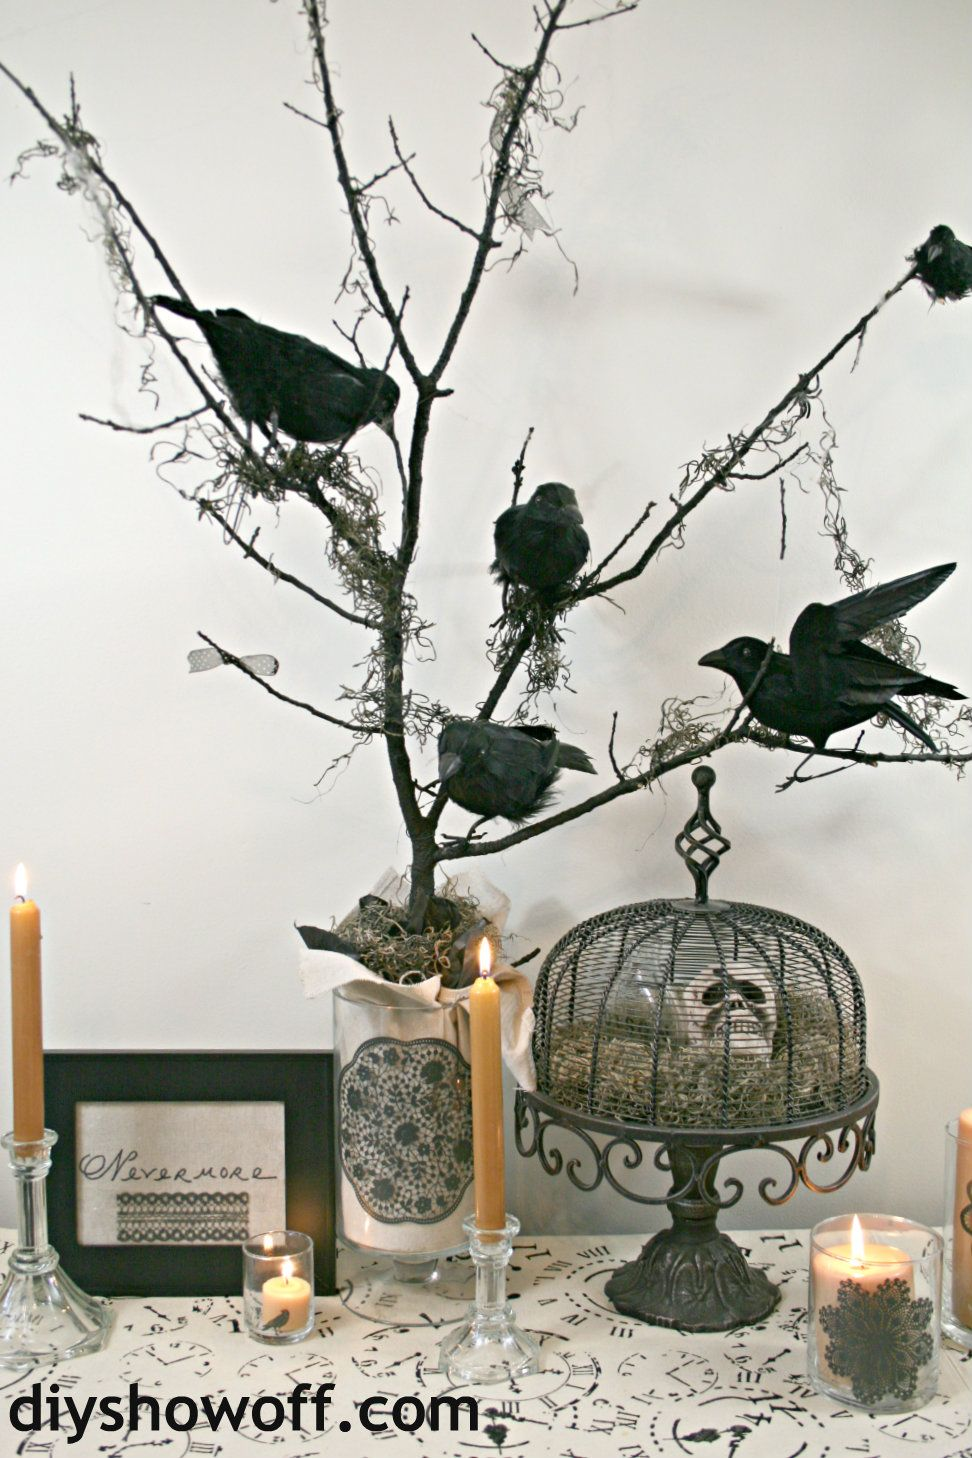 DIY Black Lace Silkscreen Glass Candle Holders Vignettes, Ravens - Diy Indoor Halloween Decorations